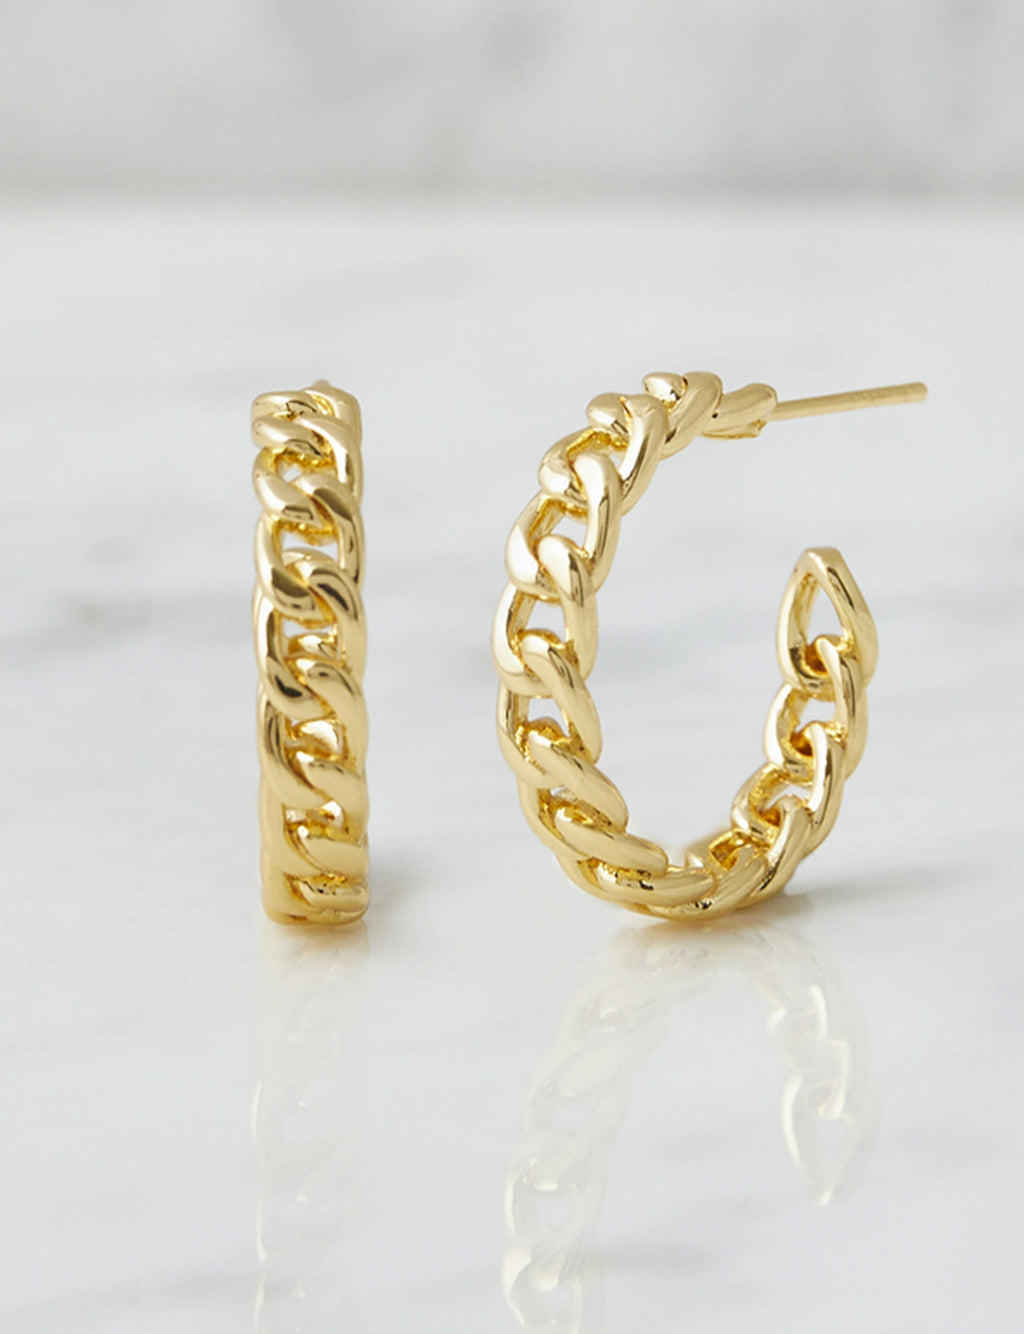 Natalie B Parker Chain Link Hoops in 18K GP